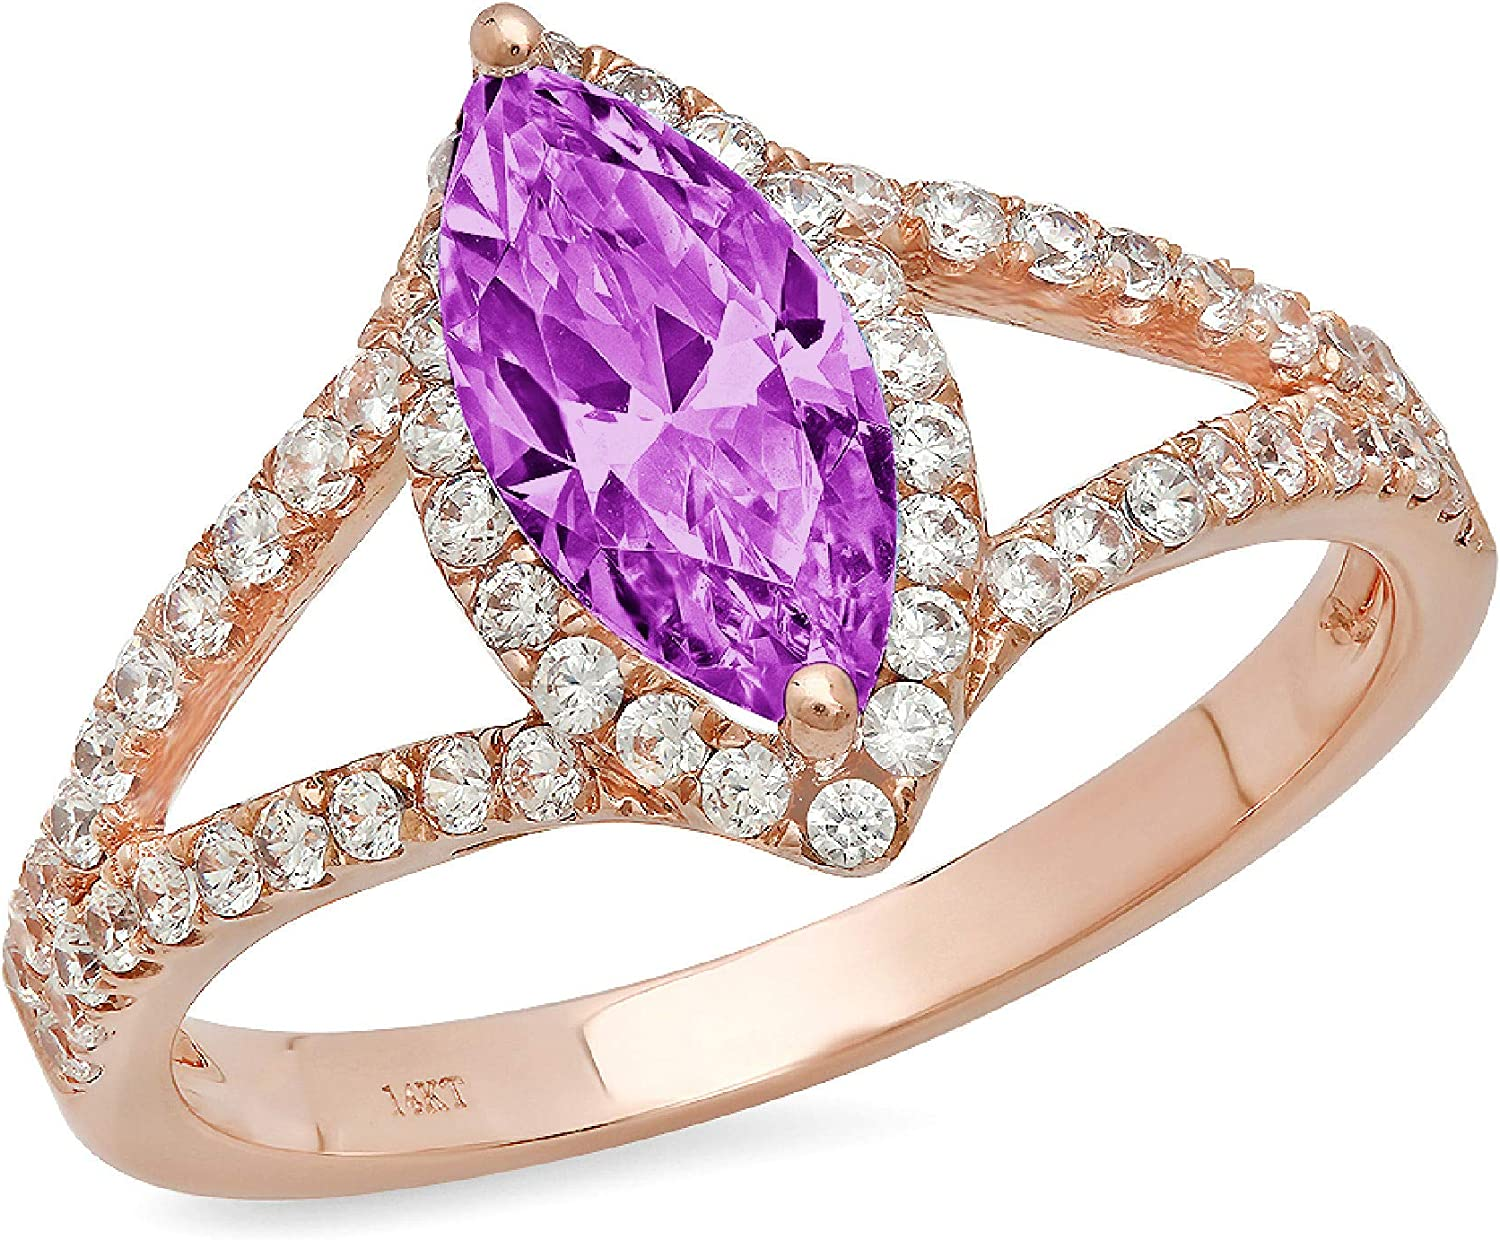 1.25 ct Marquise Cut Solitaire with Accent split shank Halo Stunning Genuine Flawless Simulated Purple Alexandrite Modern Promise Statement Designer Ring 14k Rose Gold